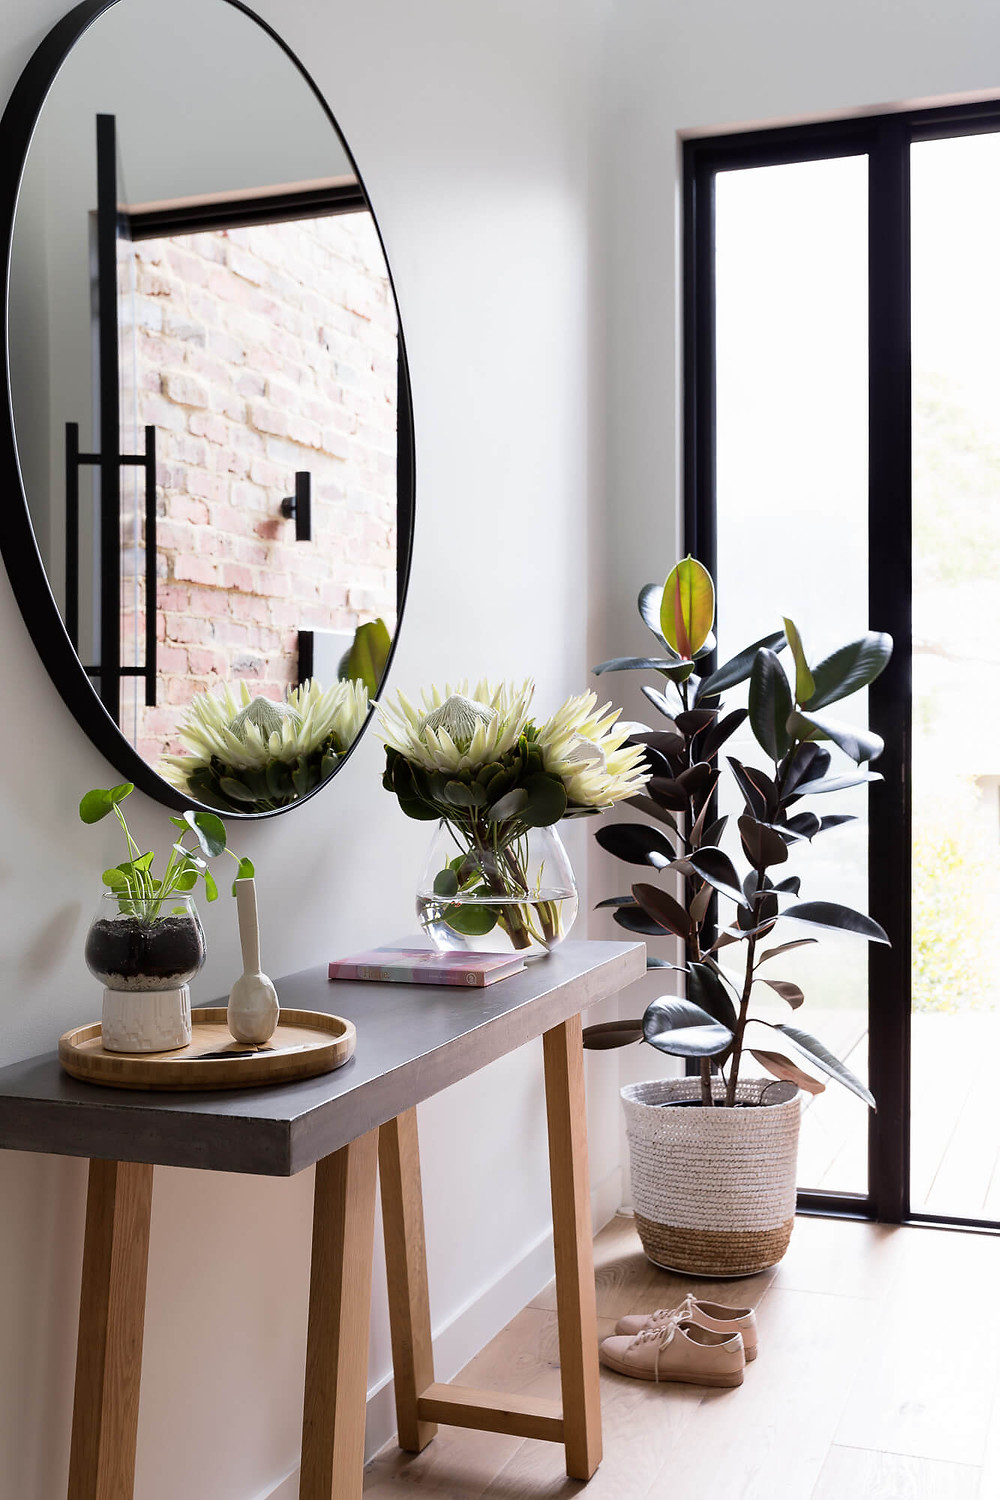 Entry foyer with table, plants and mirror